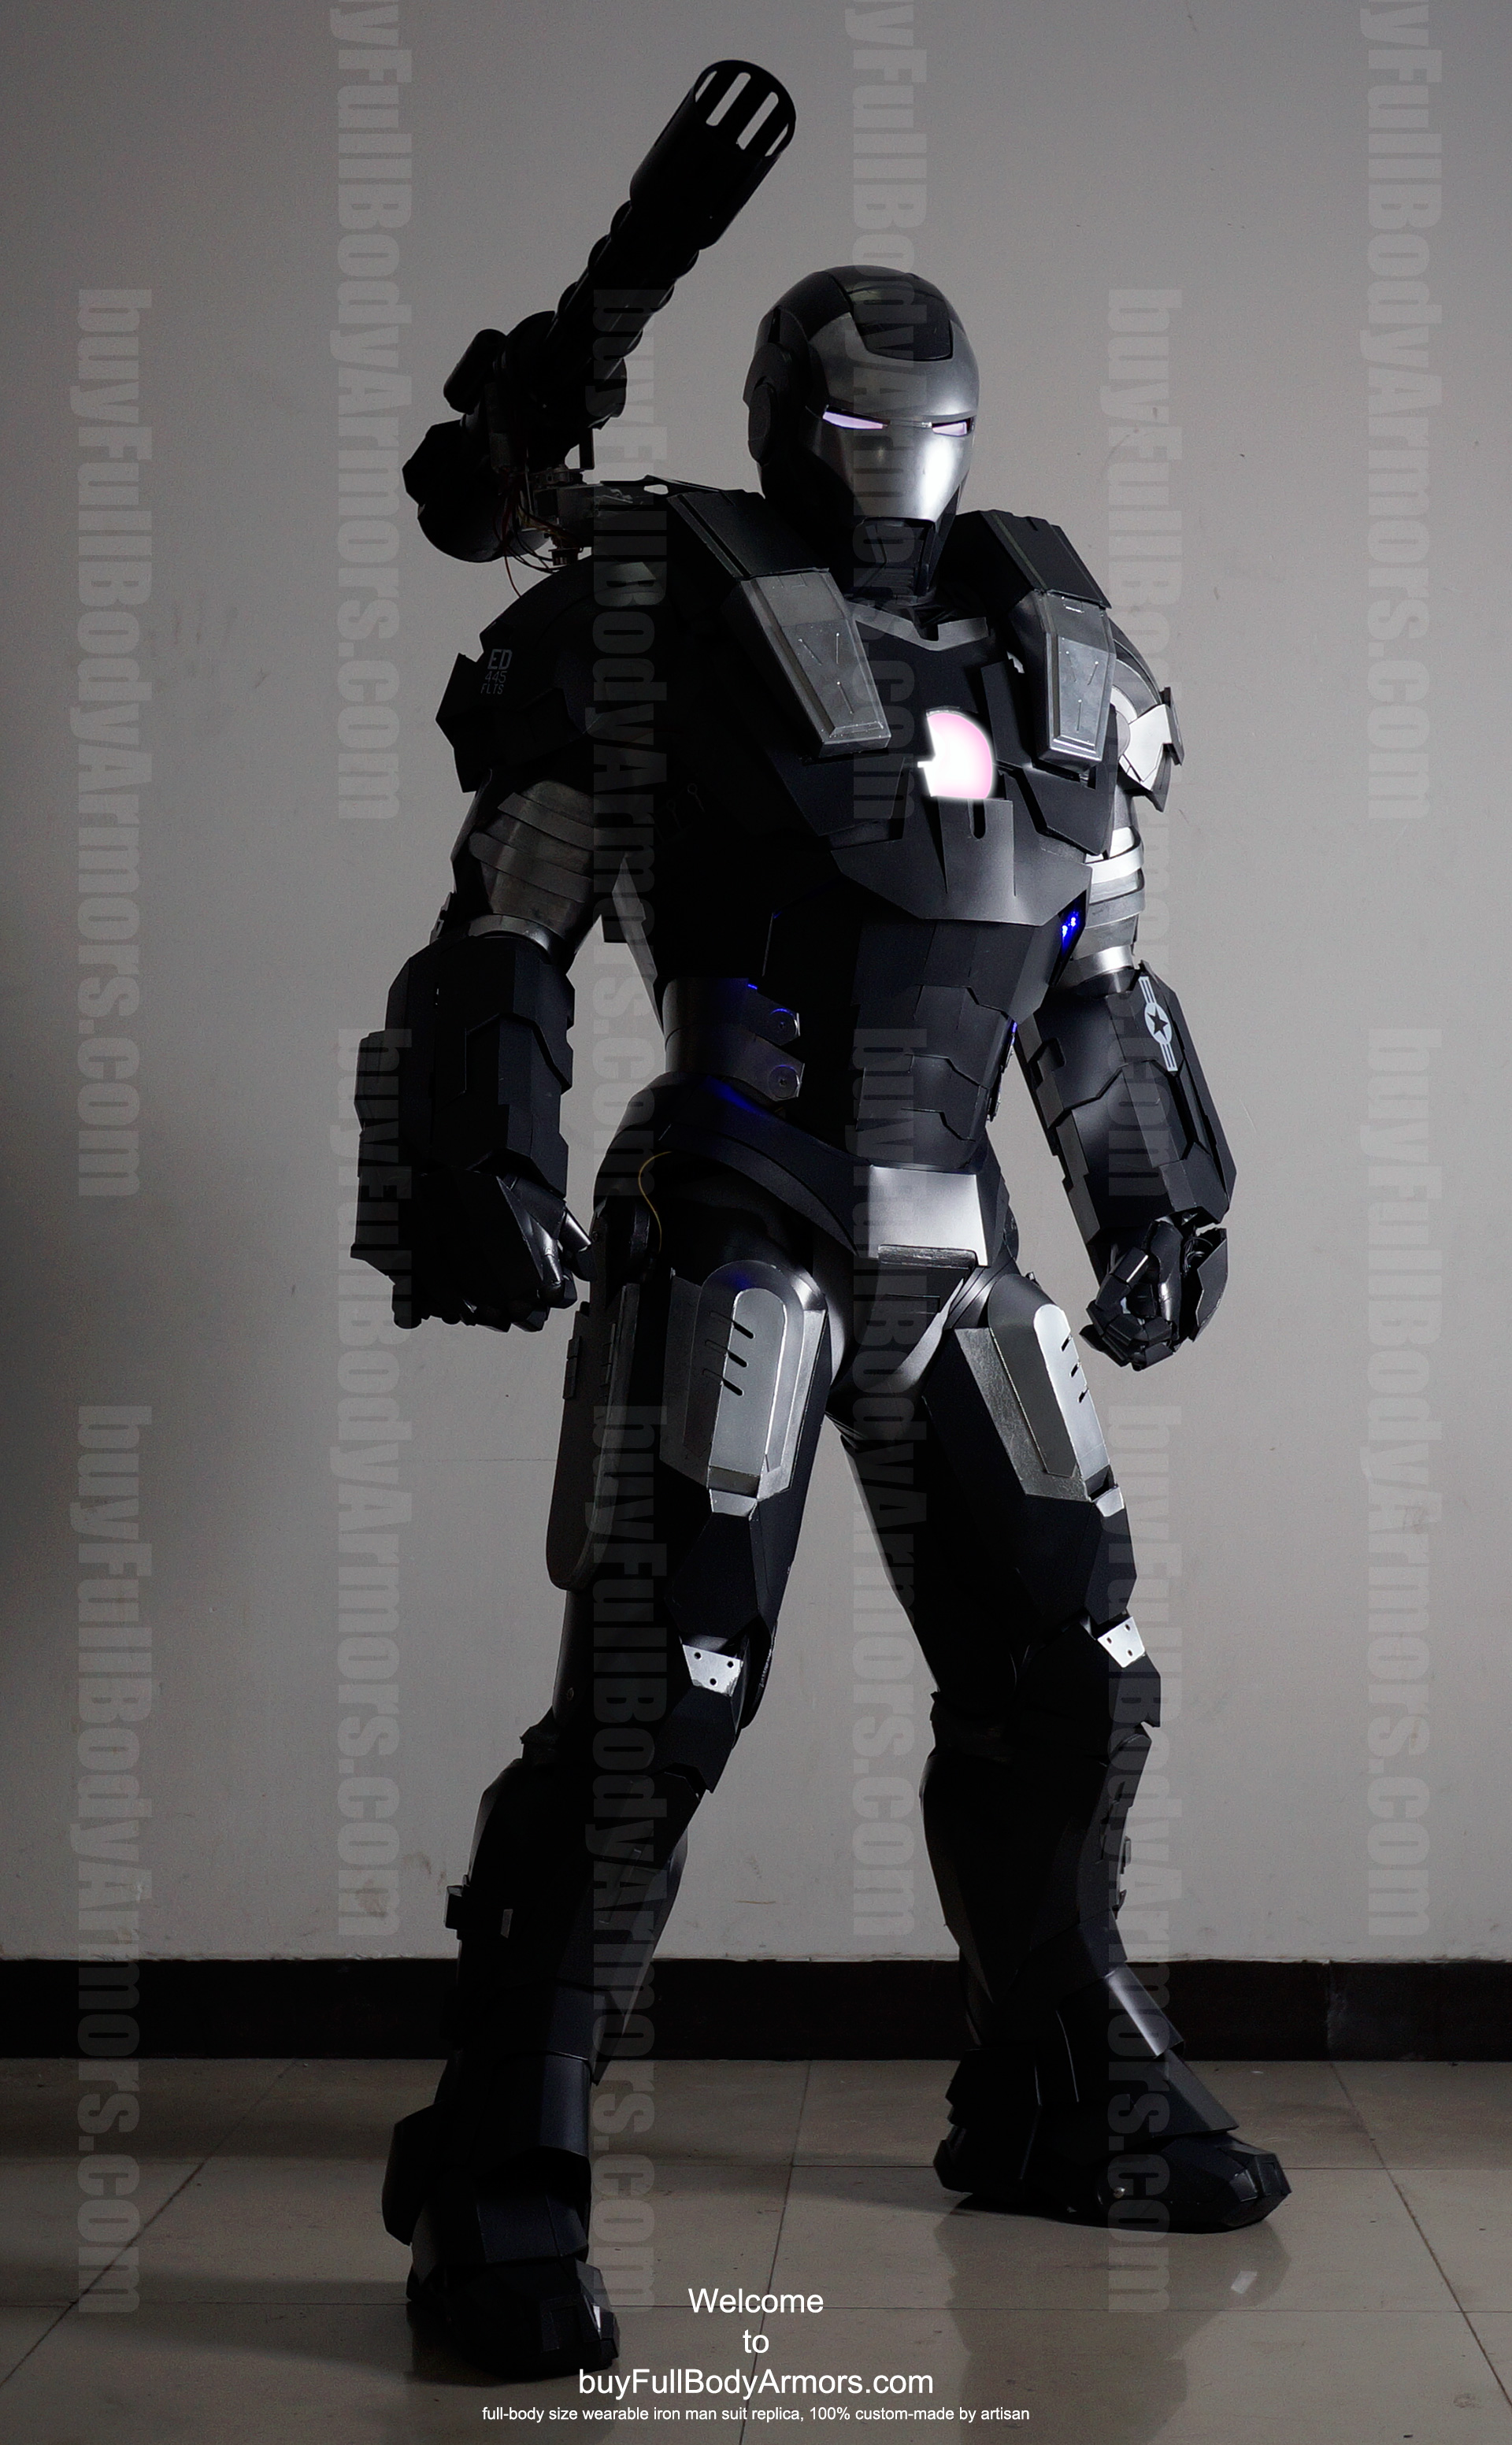 Can I Paint Over Halo Armor